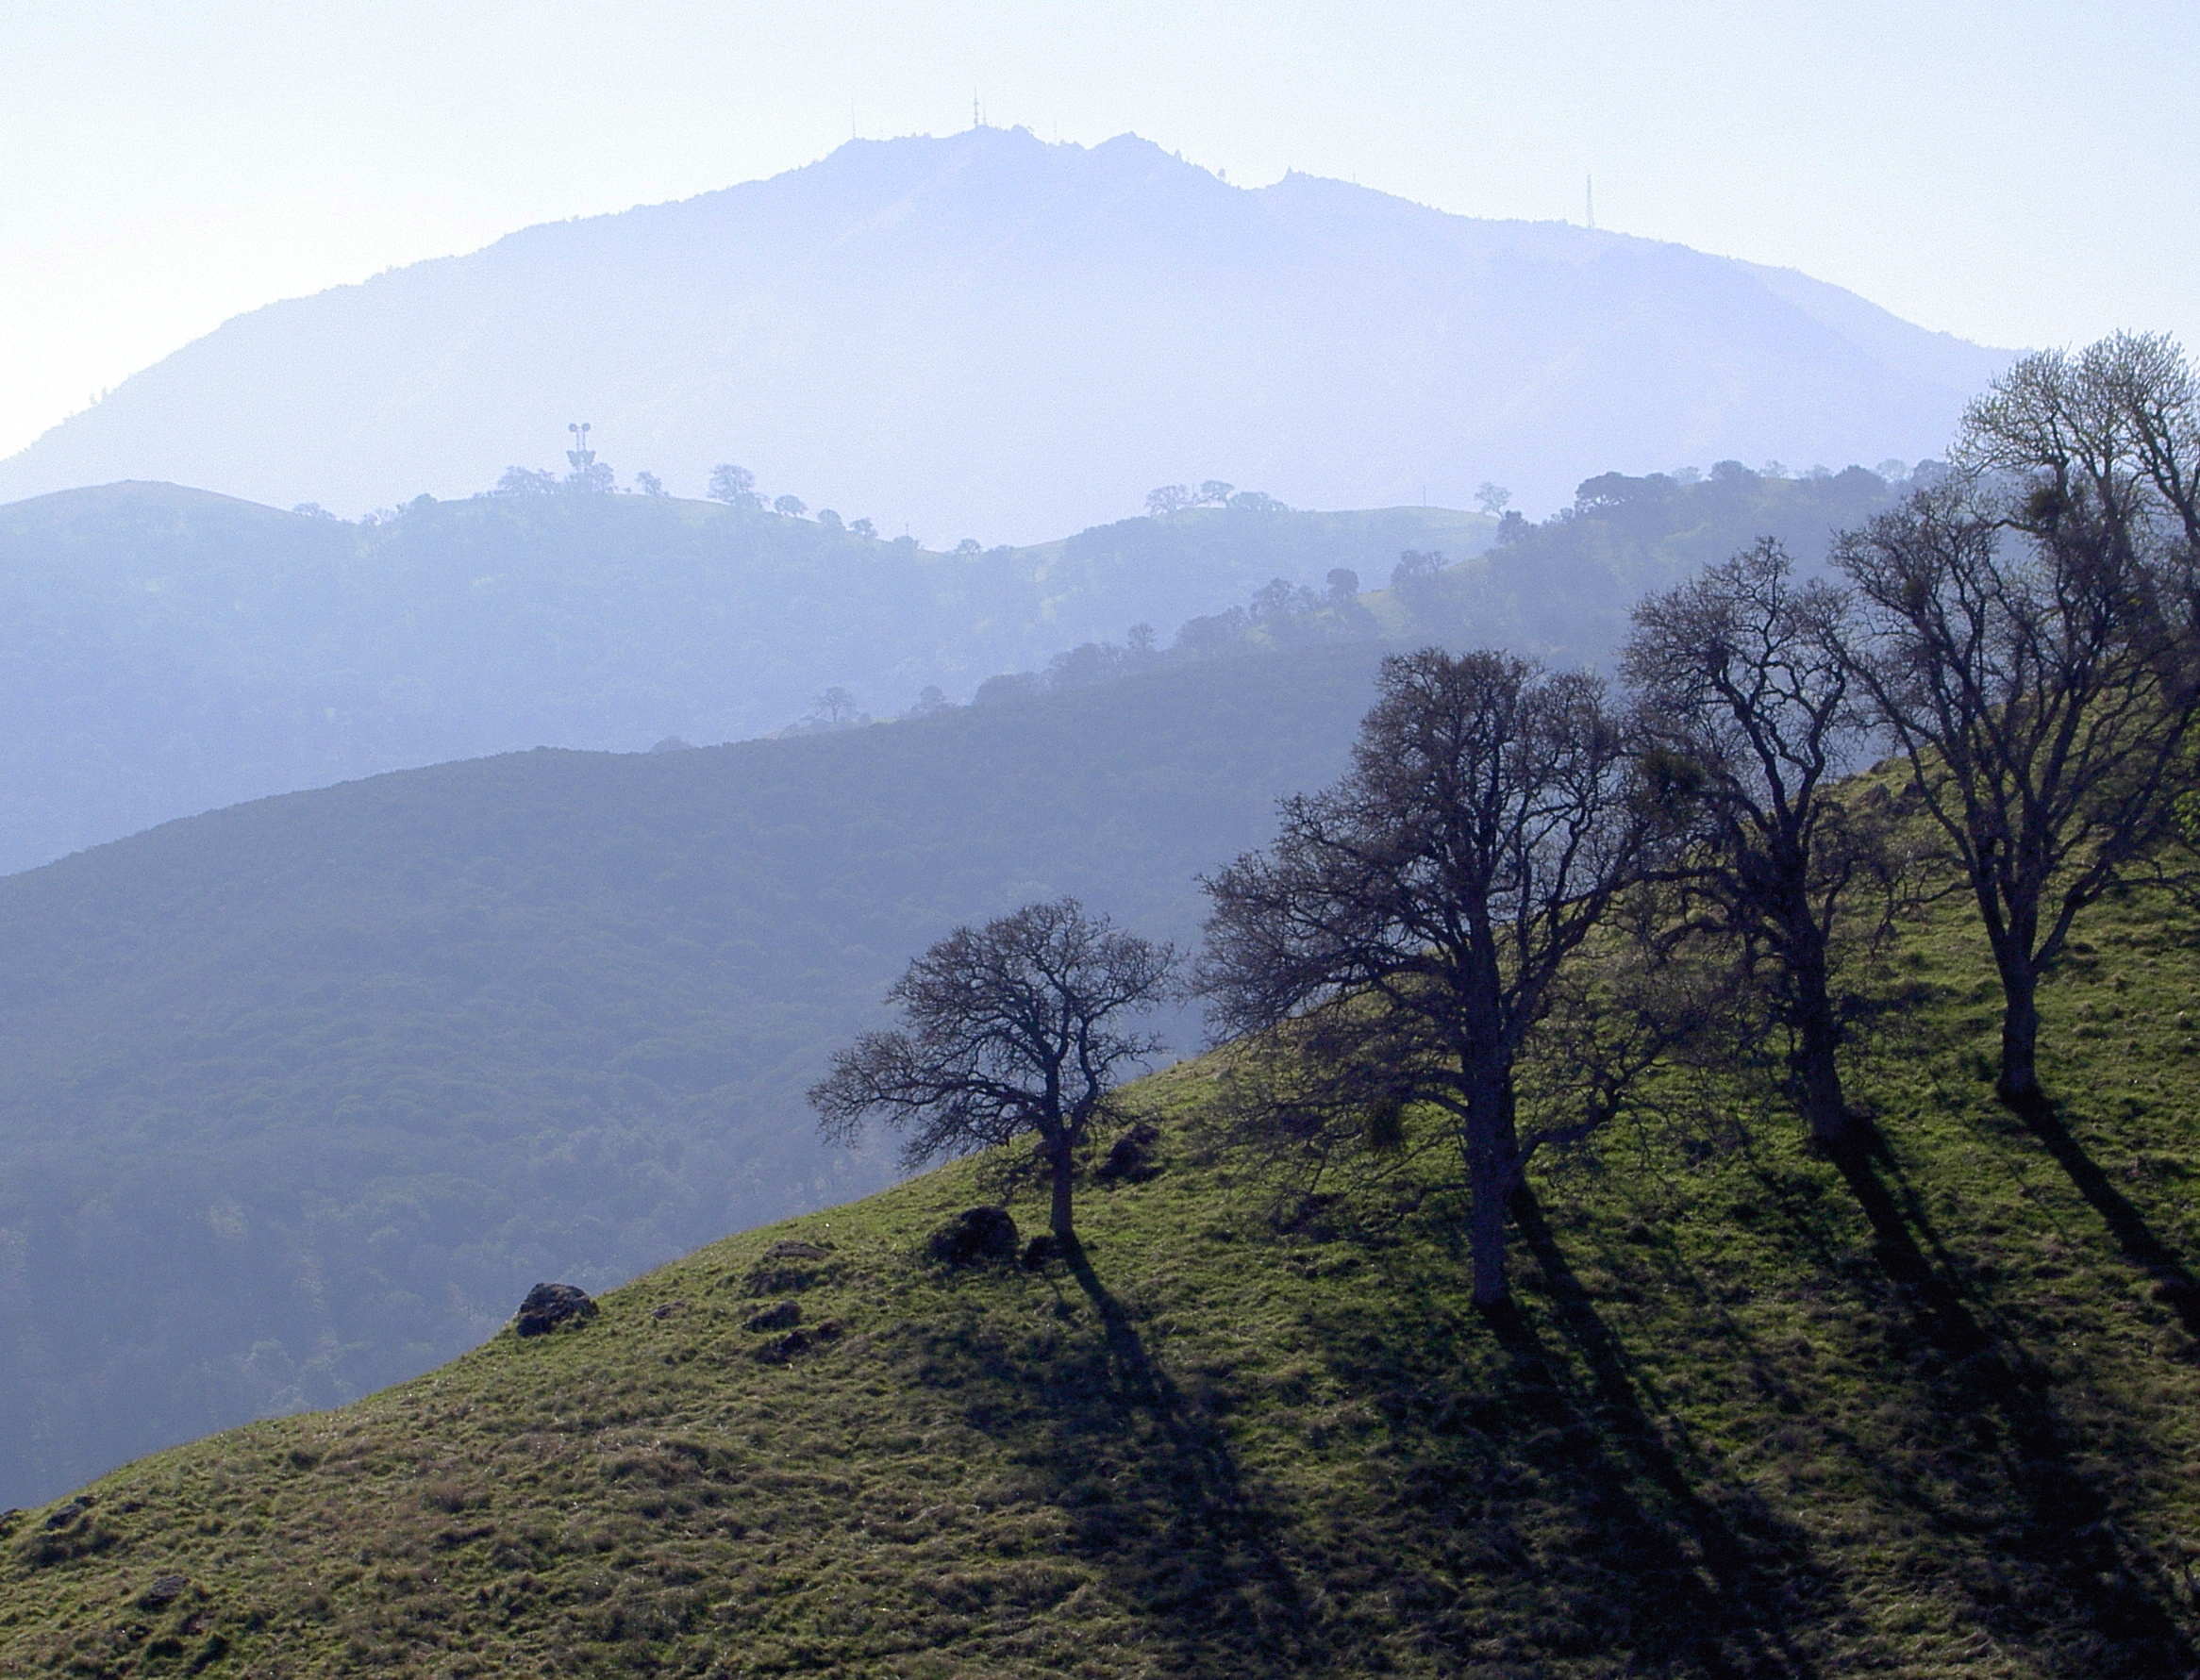 Misty morning at the intersection of Stewartville and Ridge trails. In the background rises Mt. Diablo's North Peak.